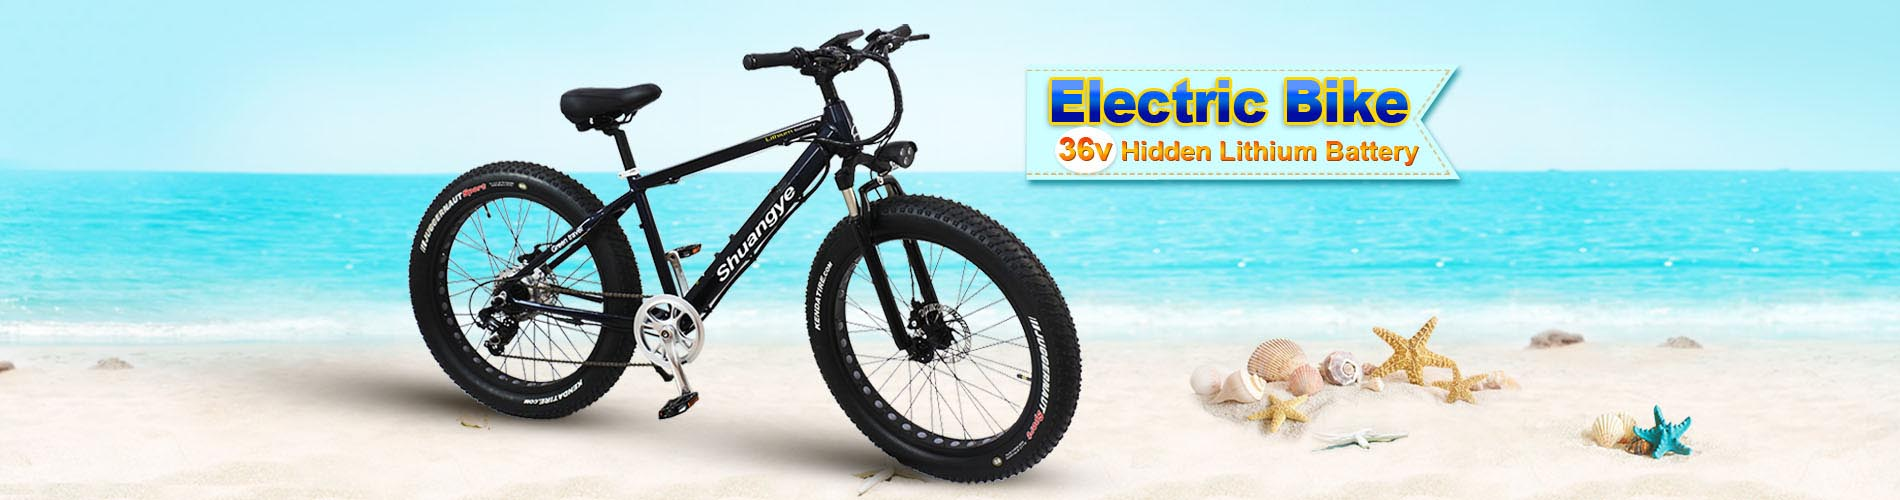 26 inch magnesium alloy wheel best women's electric bike